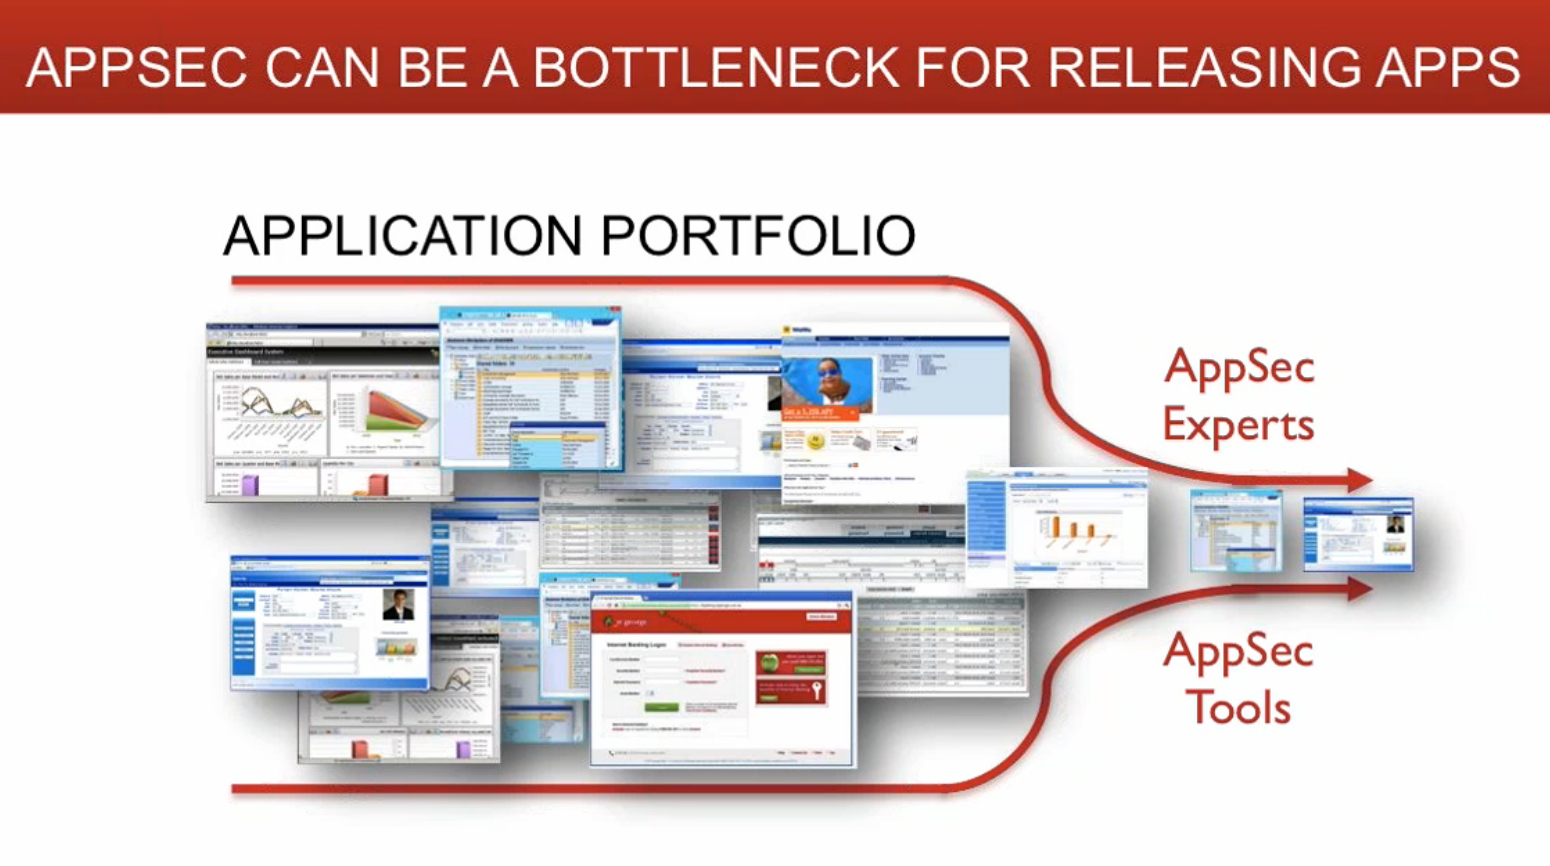 BottleNeck-appsecurity.png